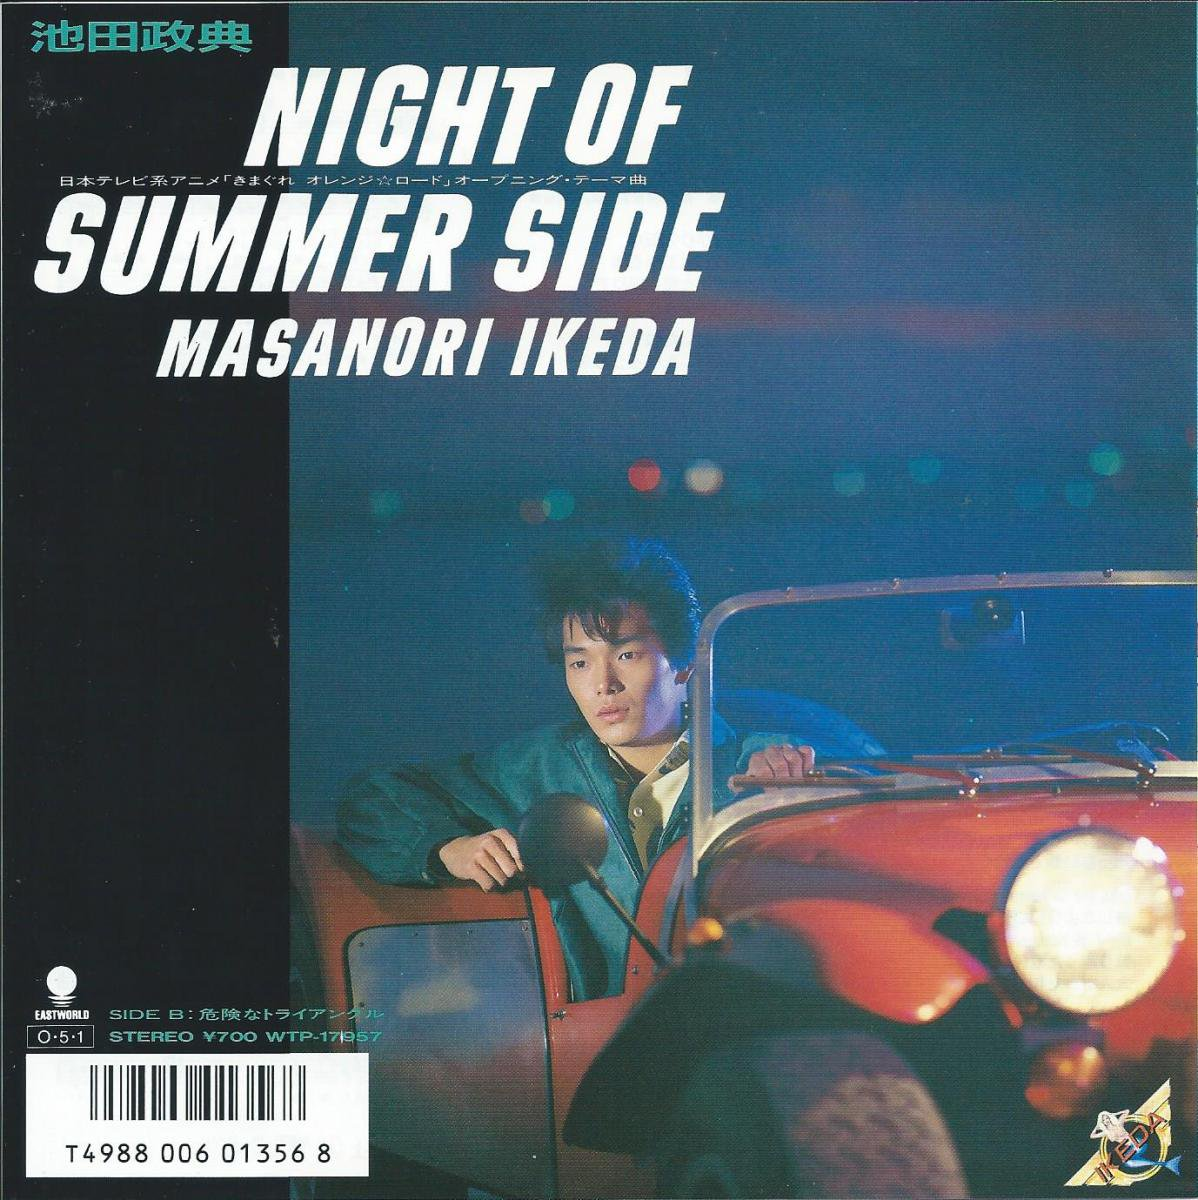 池田政典 MASANORI IKEDA / NIGHT OF SUMMER SIDE / 危険なトライアングル (KIKEN NA TRIANGLE) (7